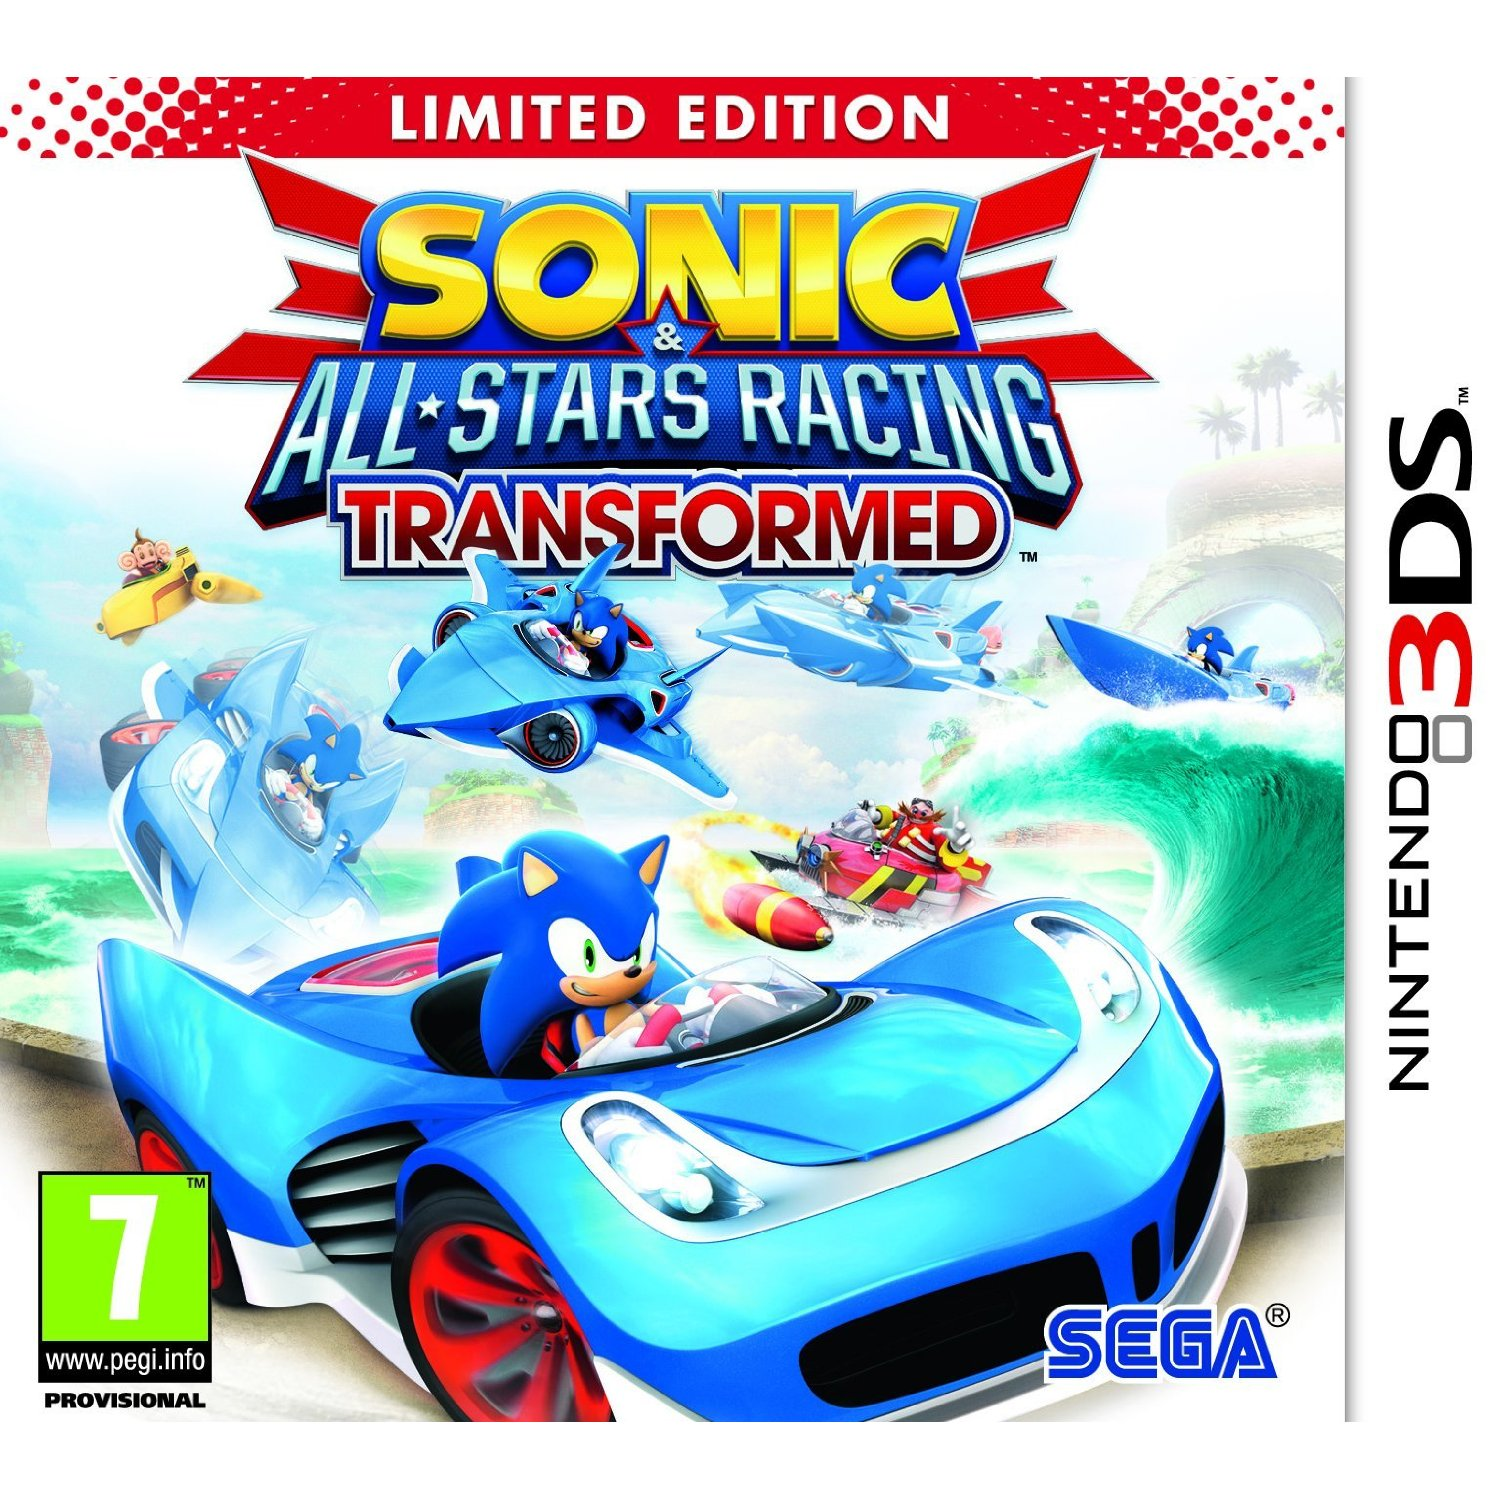 Sonic & All-Stars Racing Transformed 3DS Limited Edition Packshot